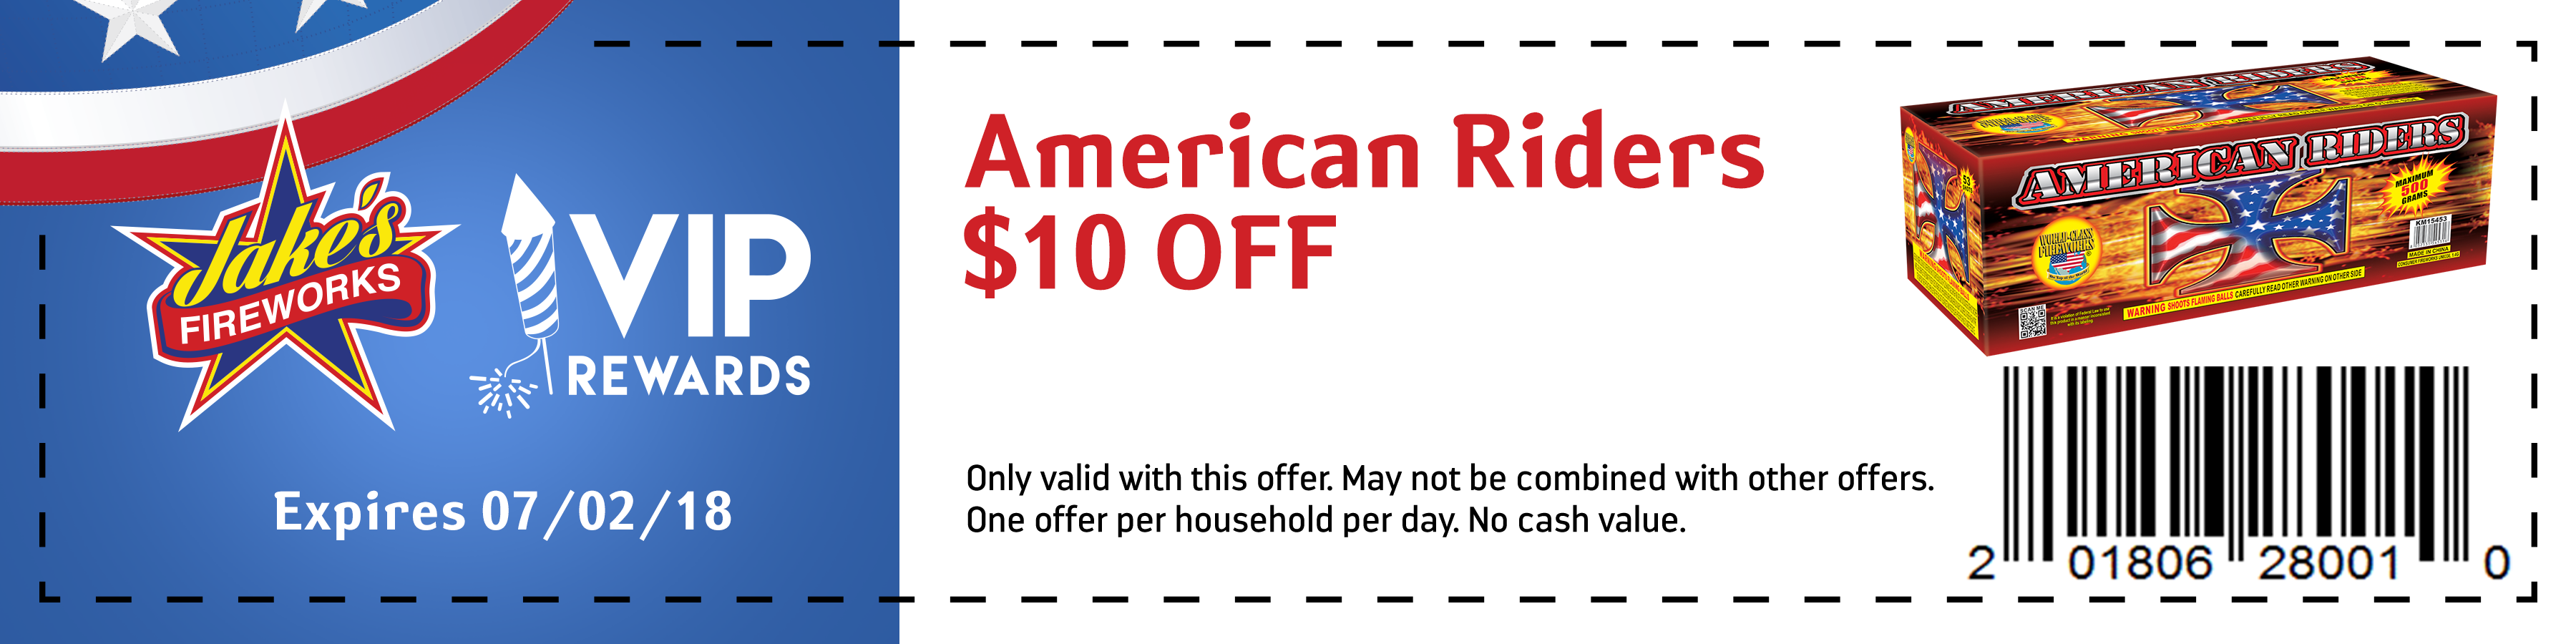 JF-AmericanRiders_10Off